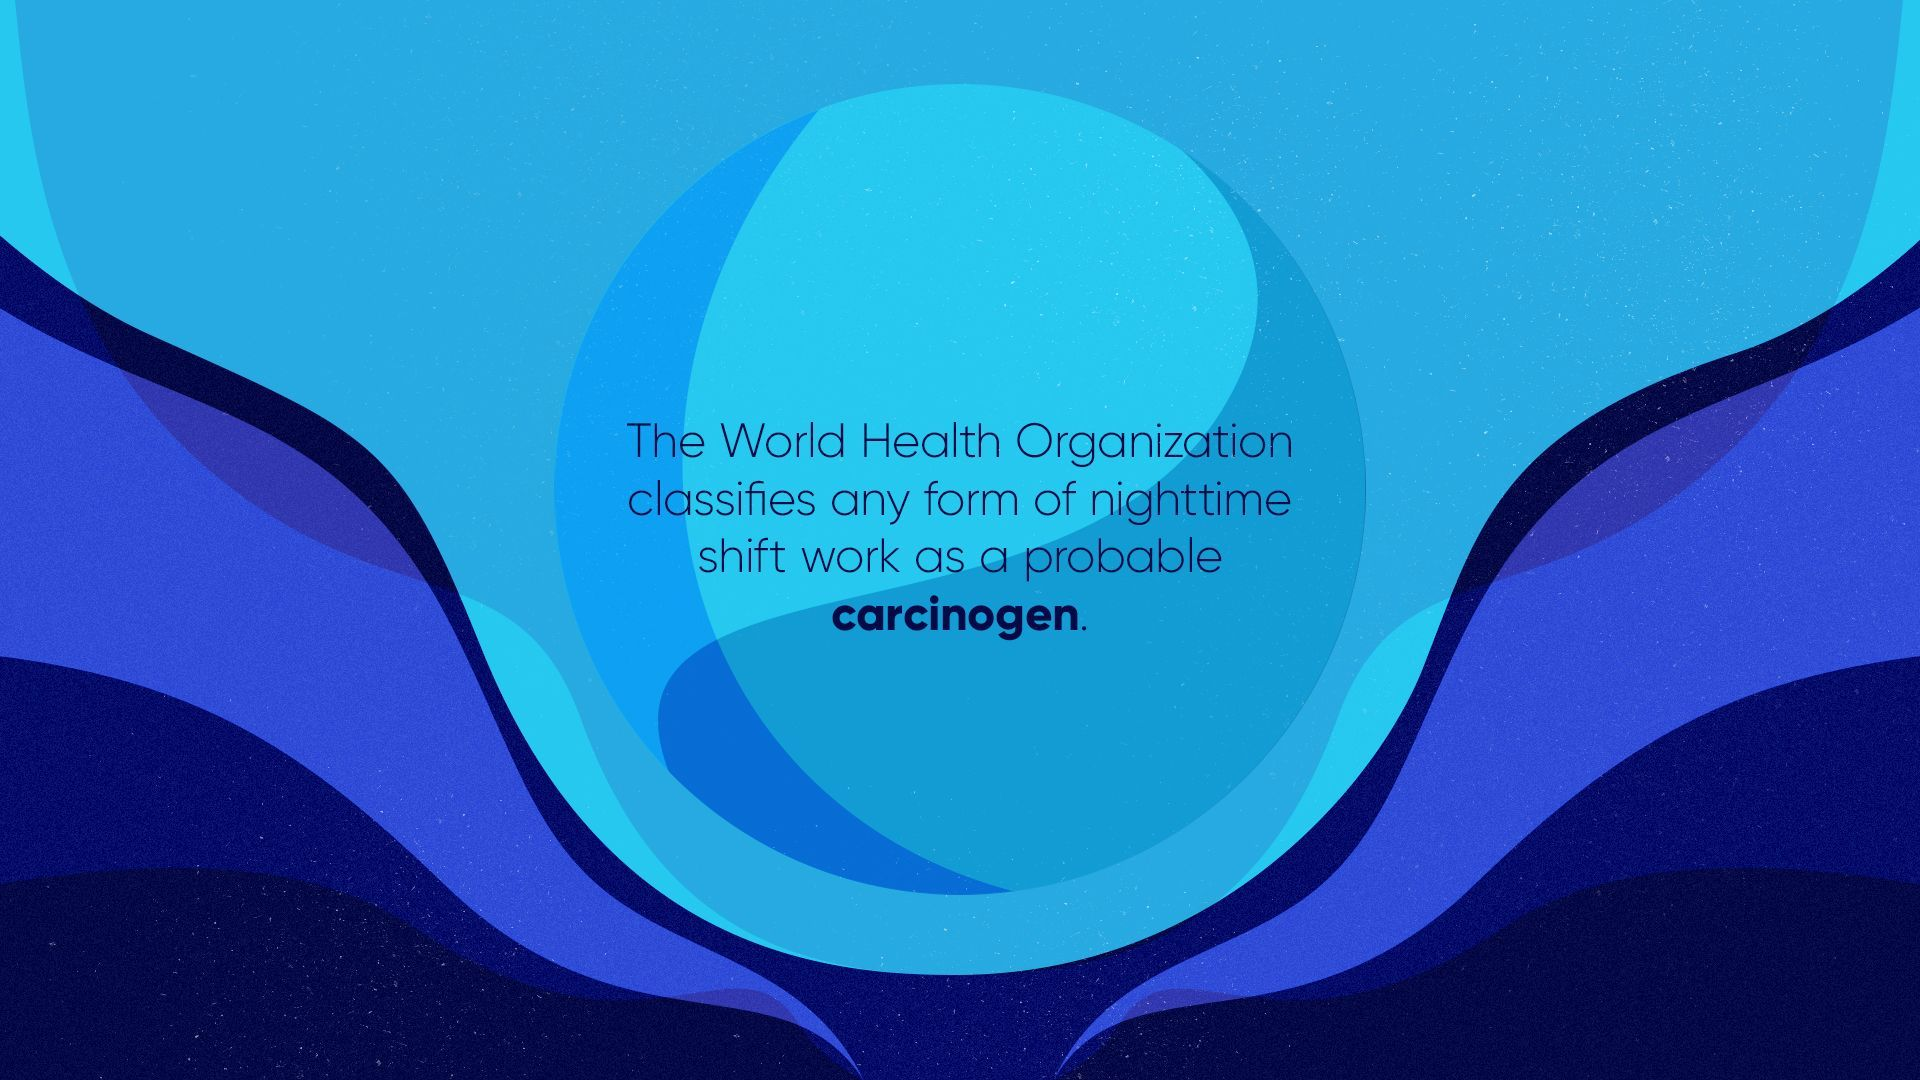 The World Health Organization Classifies Any Form Of Nighttime Shift Work As A Probable Carcinogen S Health Organizations Shift Work World Health Organization